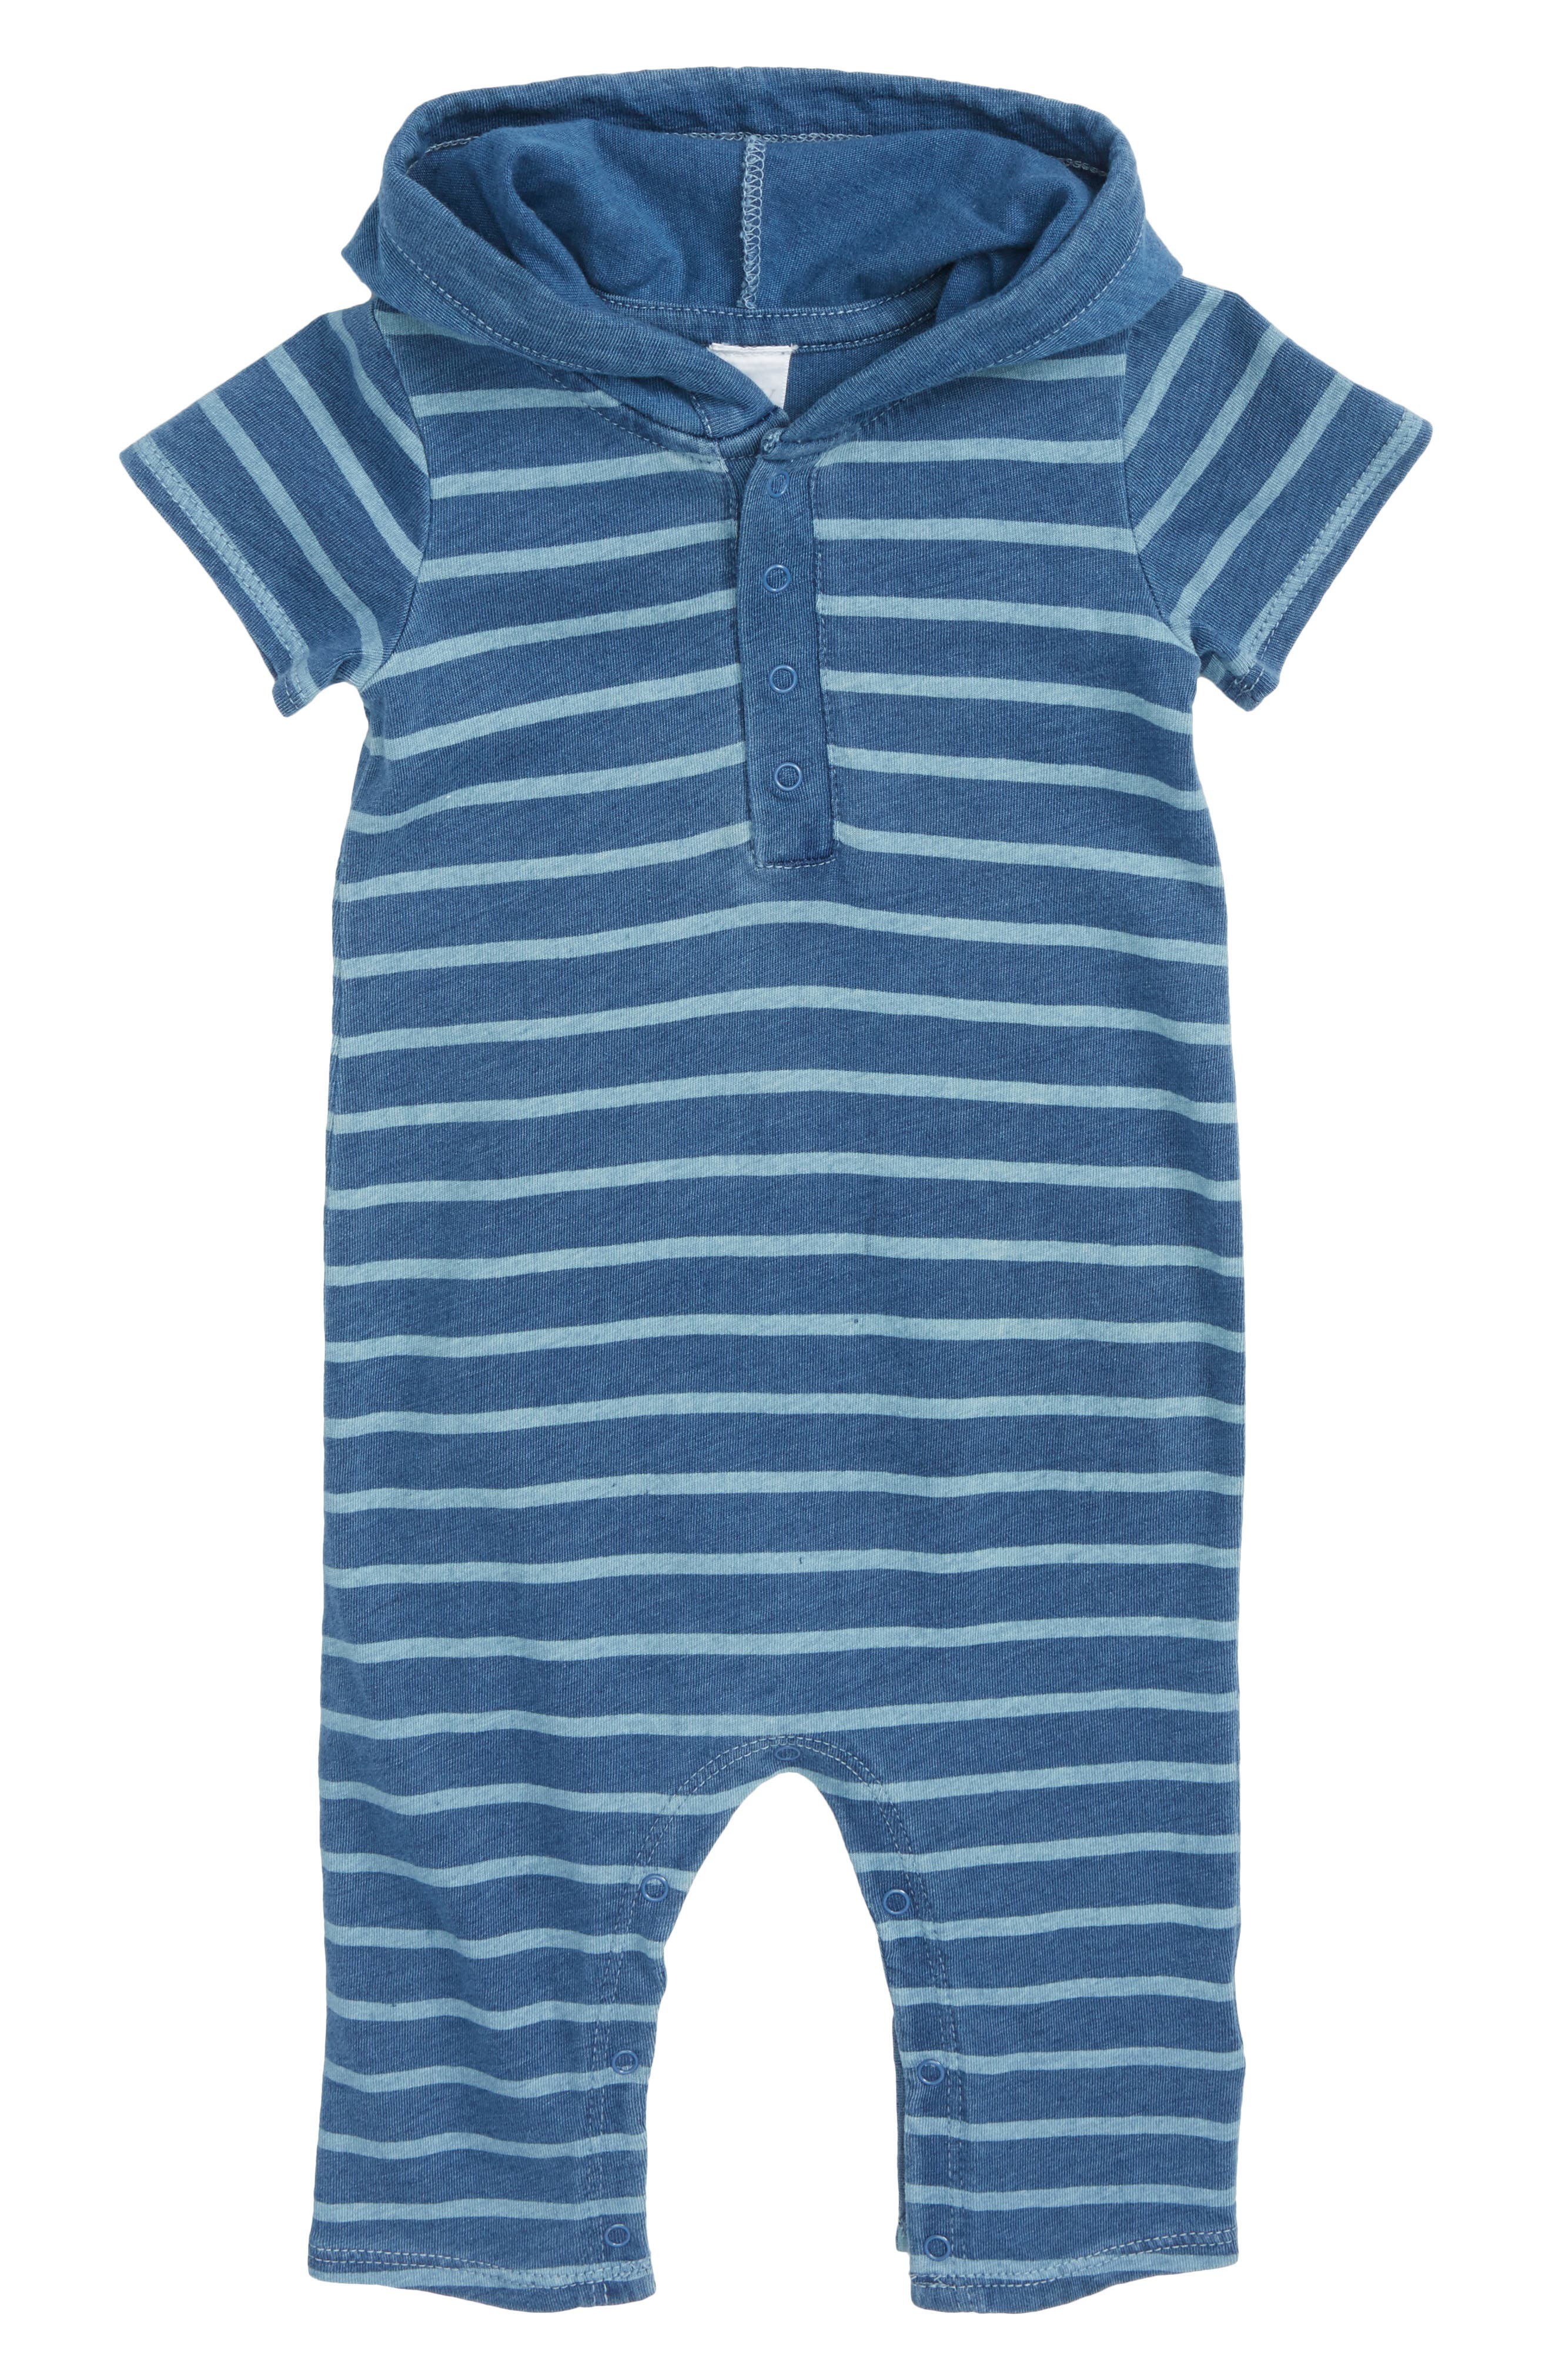 Hooded Romper,                         Main,                         color, 401